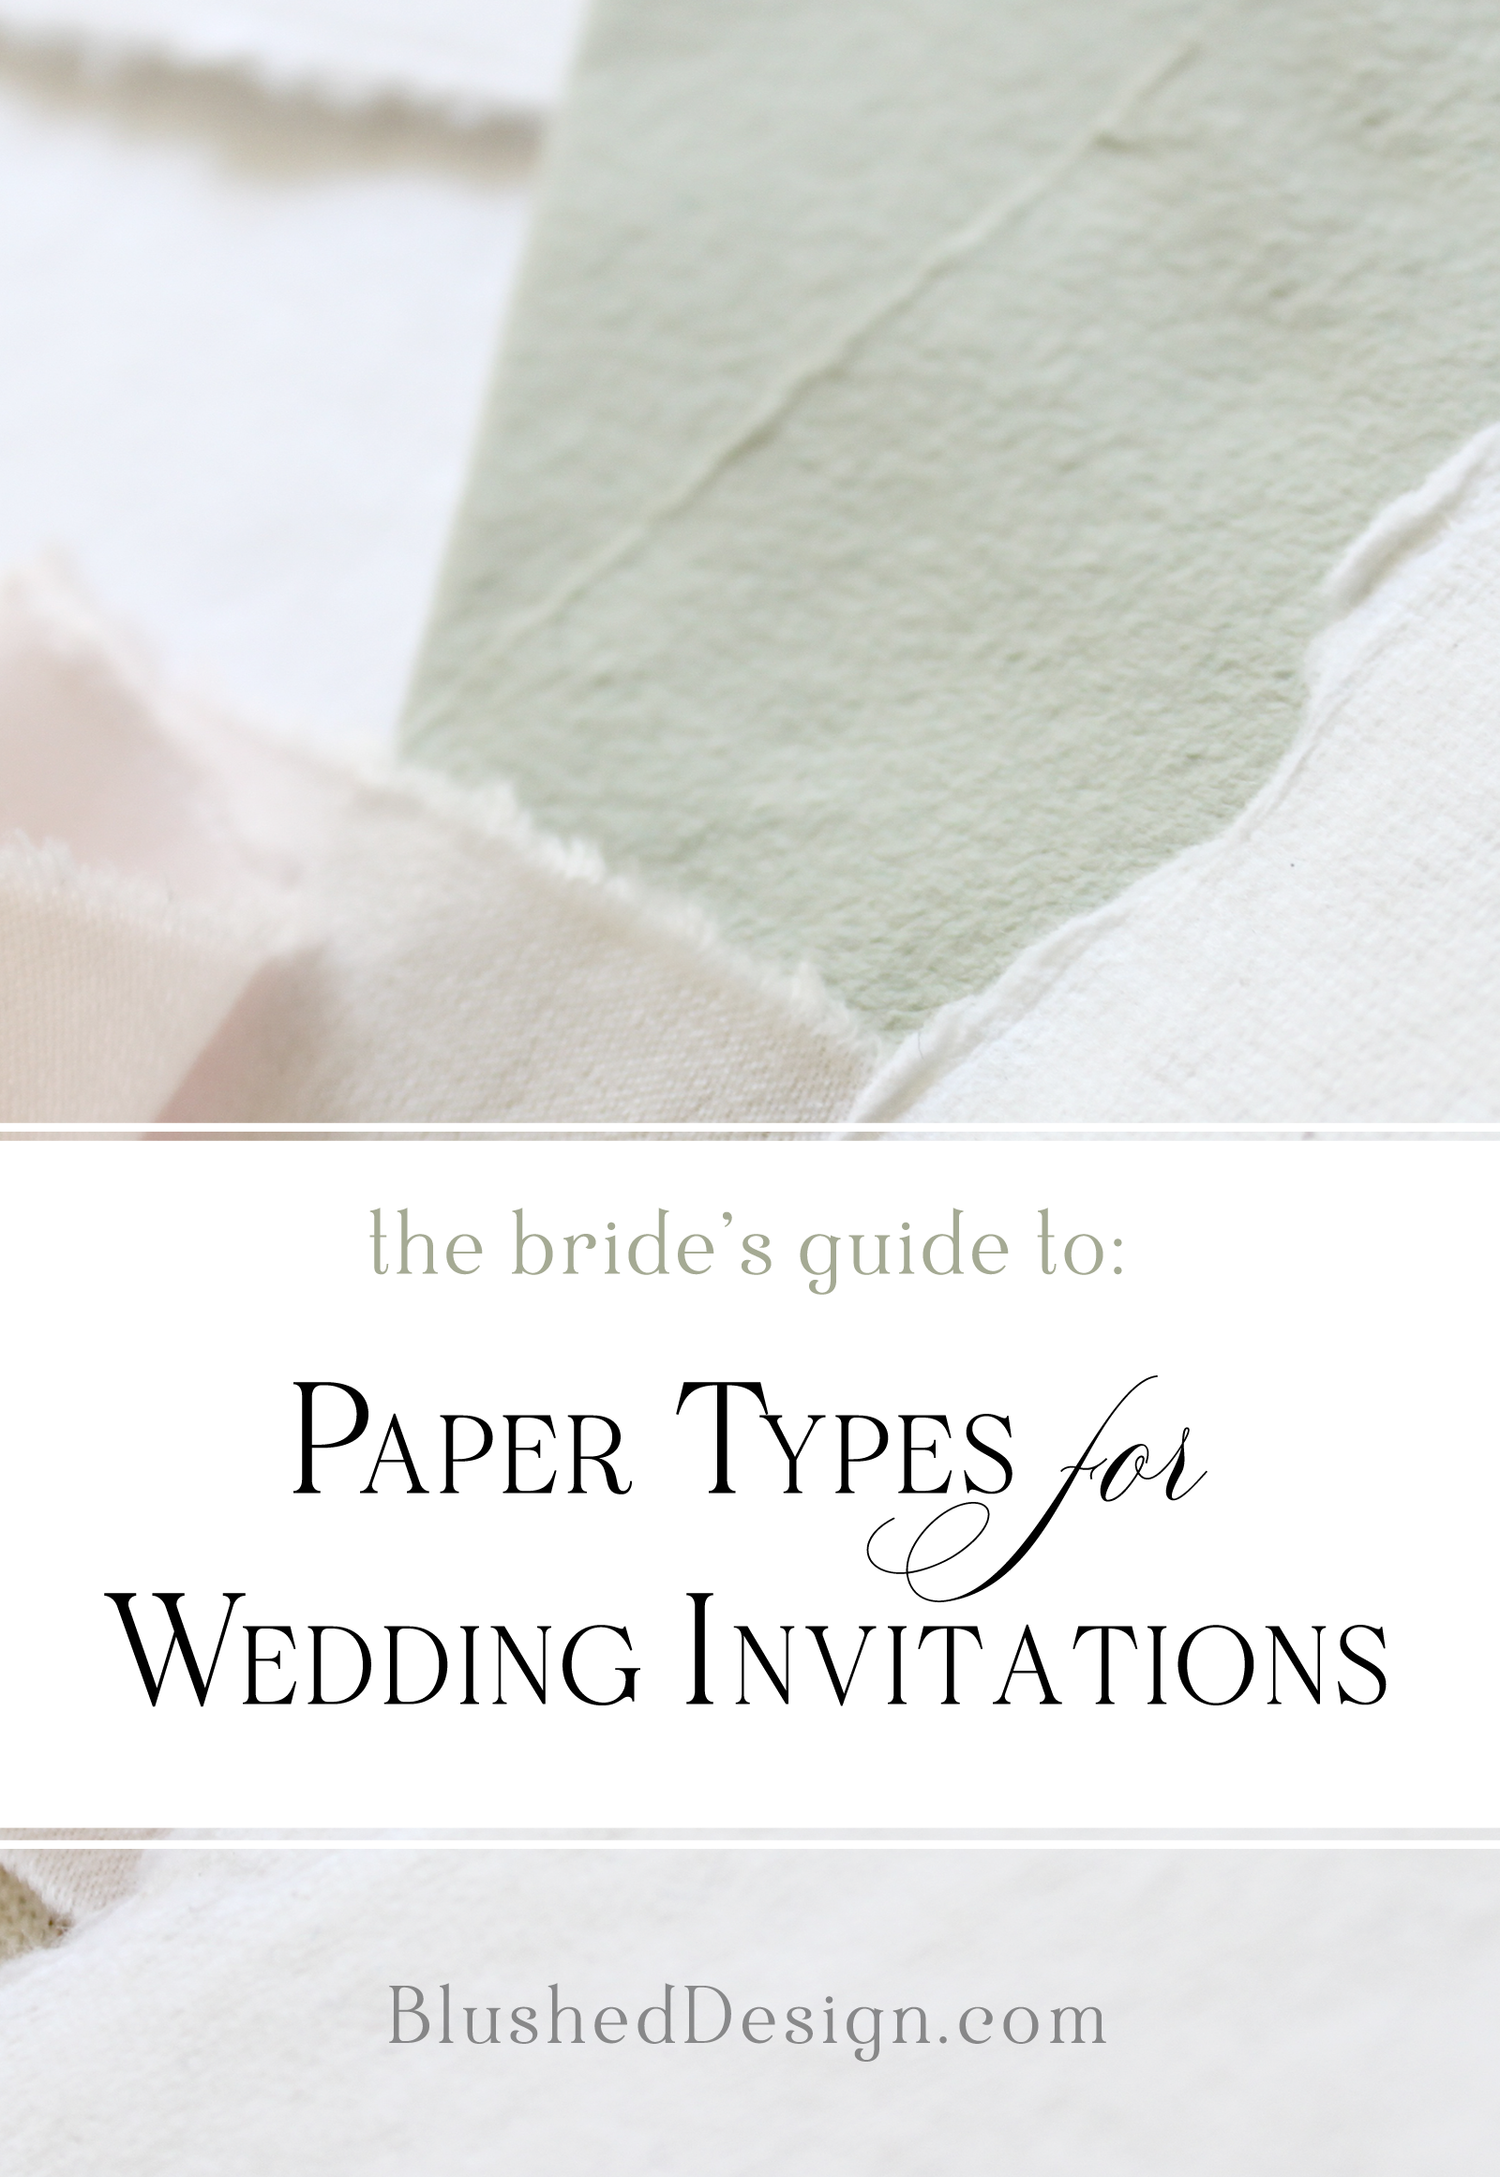 A Simple Guide To Wedding Invitation Papers For The Modern Bride Learn About Handmade Paper